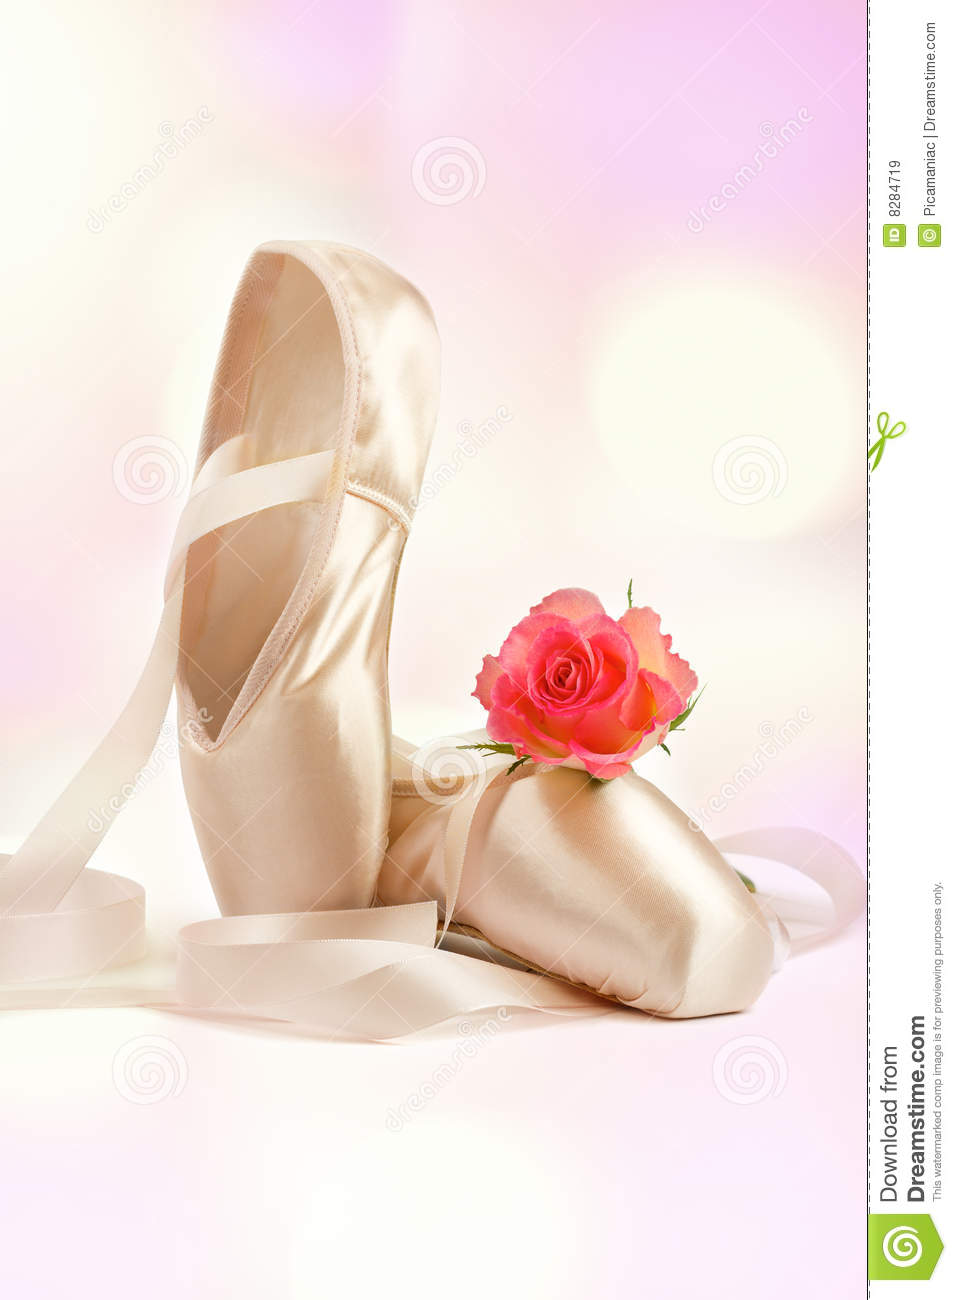 Ballet Shoes Stock Image Image Of Ballet Foot Training